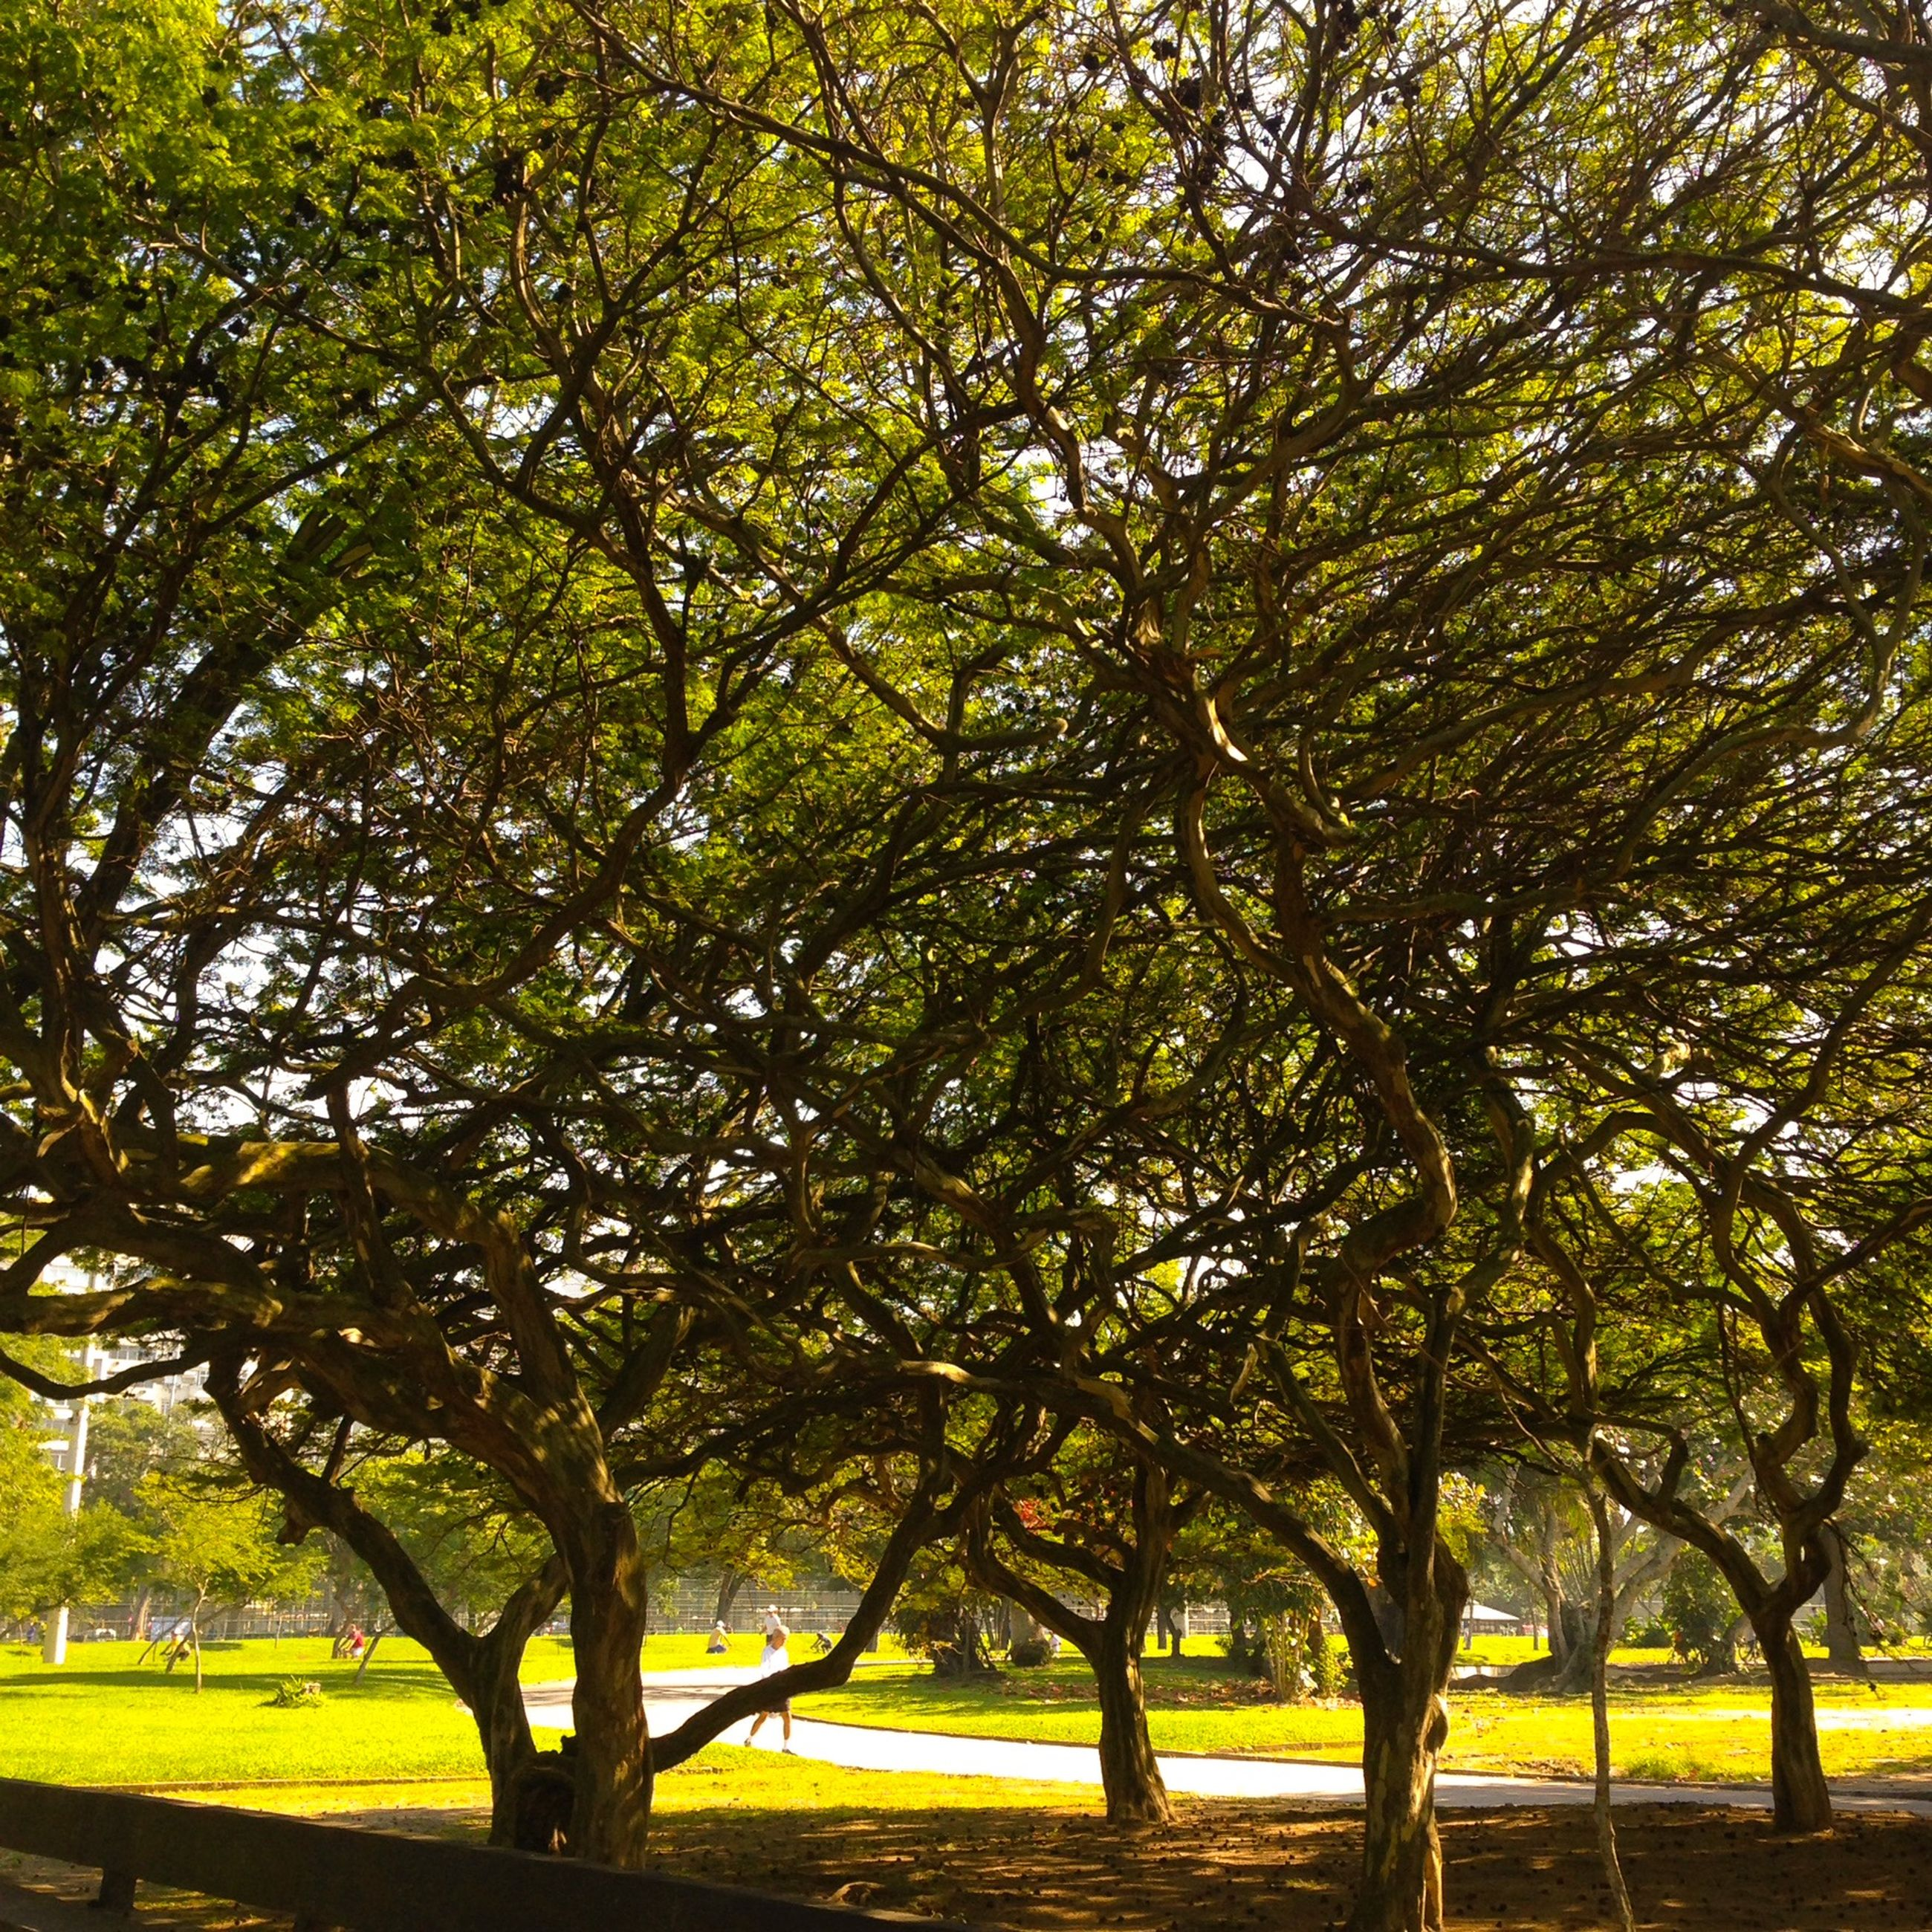 tree, tranquility, branch, growth, park - man made space, tree trunk, tranquil scene, beauty in nature, nature, scenics, park, green color, sunlight, grass, water, idyllic, shadow, outdoors, treelined, sky